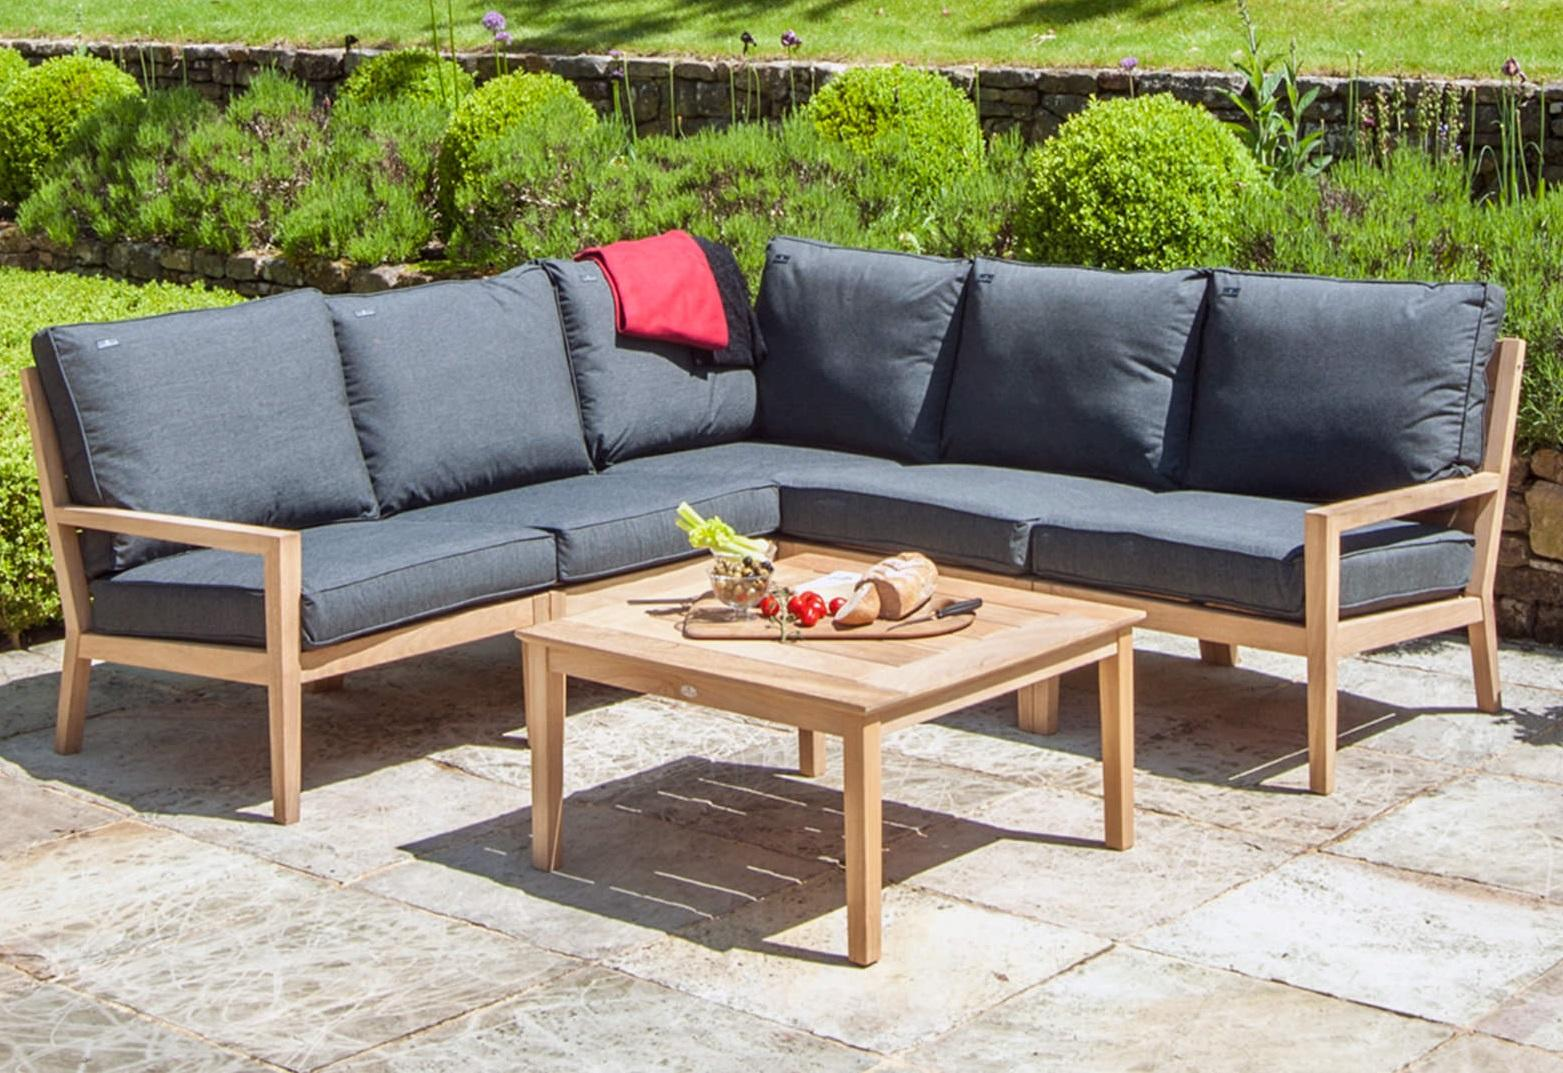 Garden Lounge Corner Sofa Set In Roble Hardwood With Grey